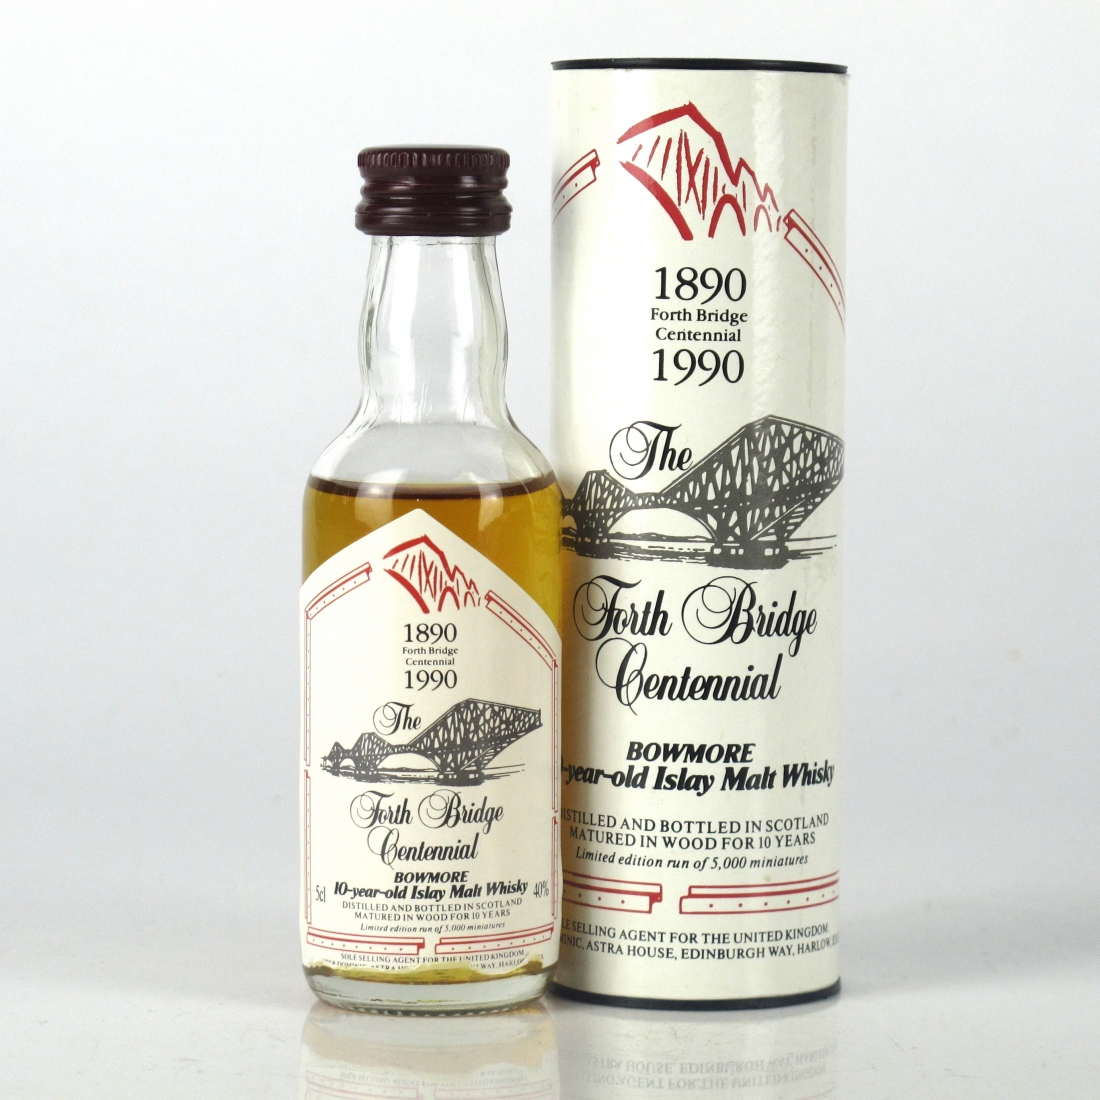 Bowmore Forth Bridge Centennial 10 Year Old 5cl Miniature